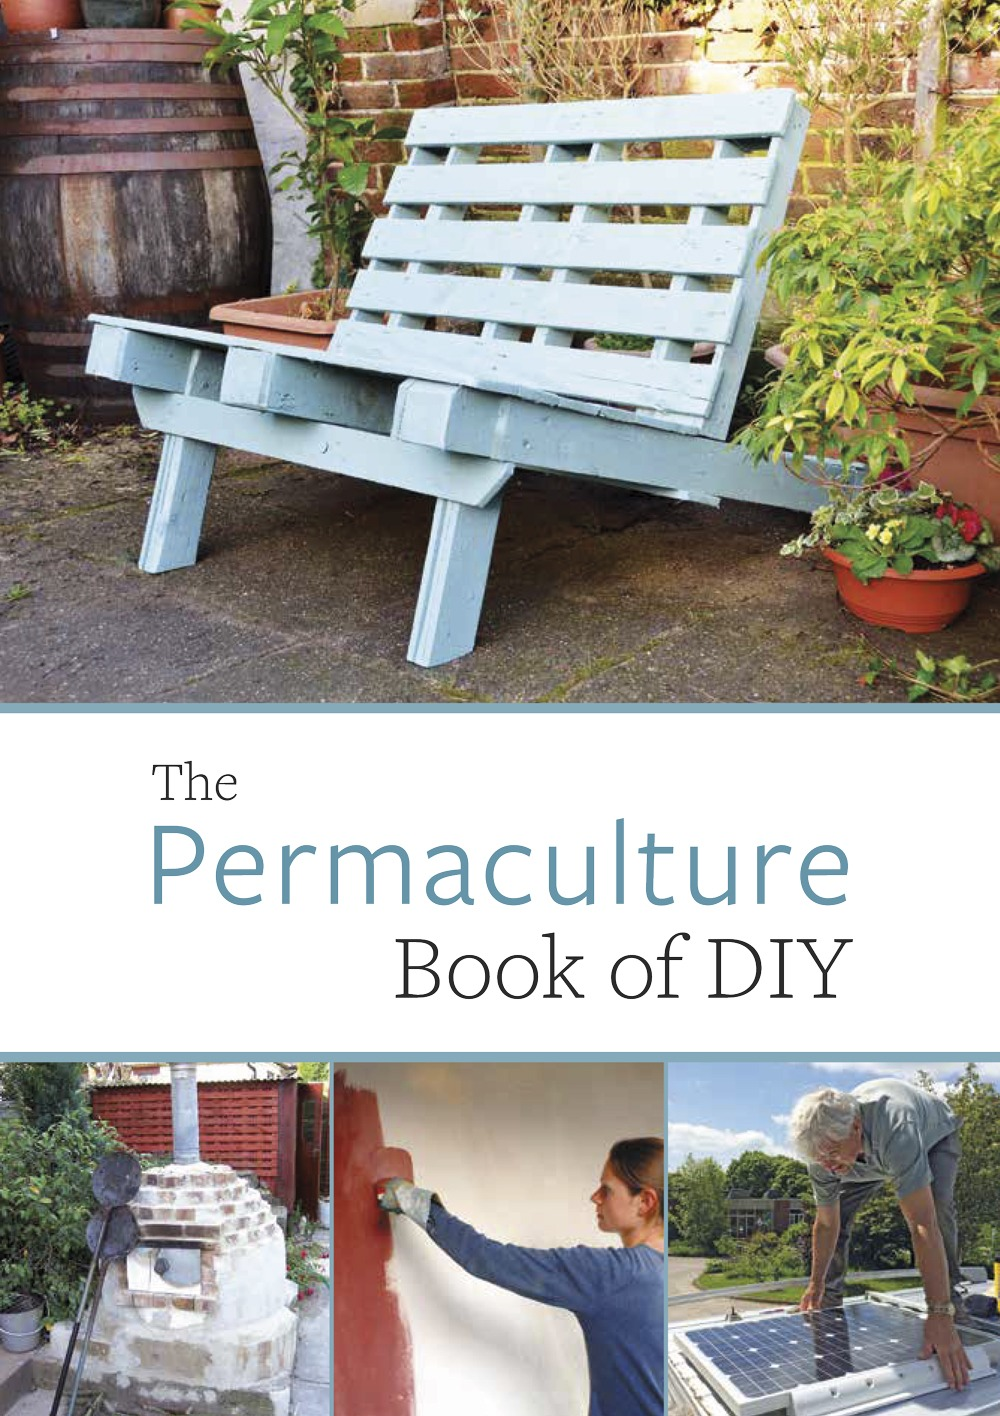 Permaculture Book of DIY by John Adams and friends